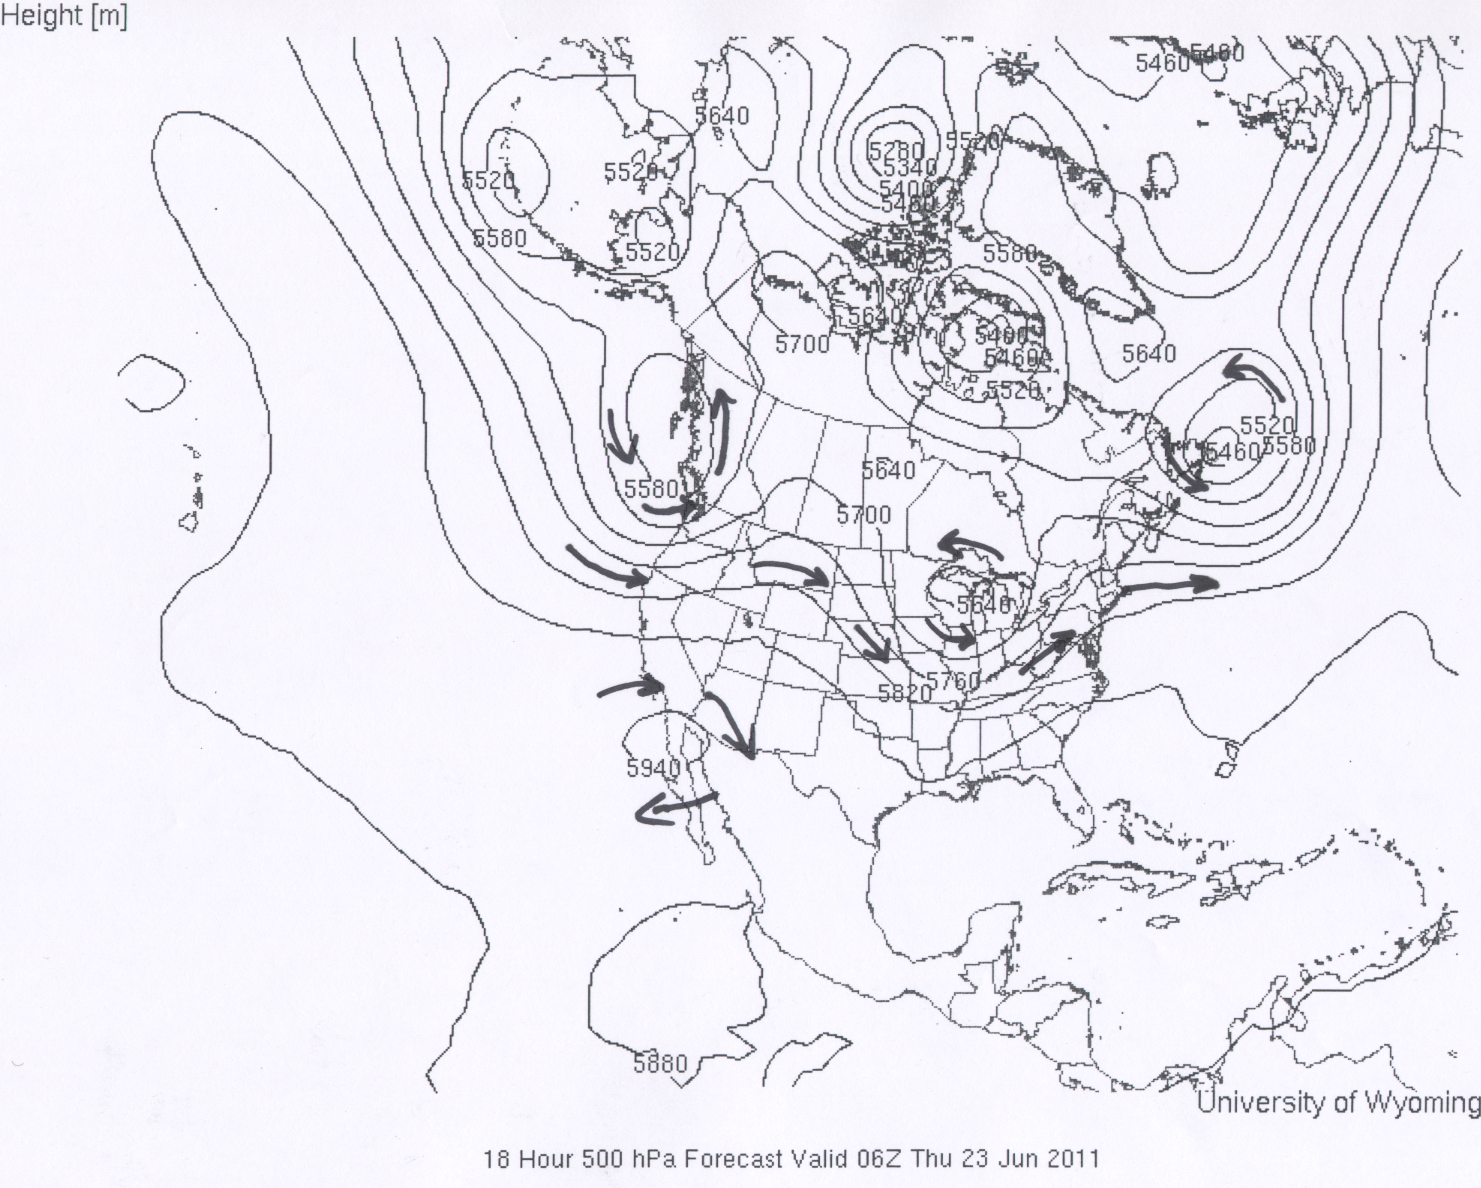 atmo336 spring 2014 Layers of the Atmosphere Troposphere in the second ex le for 500 mb winds